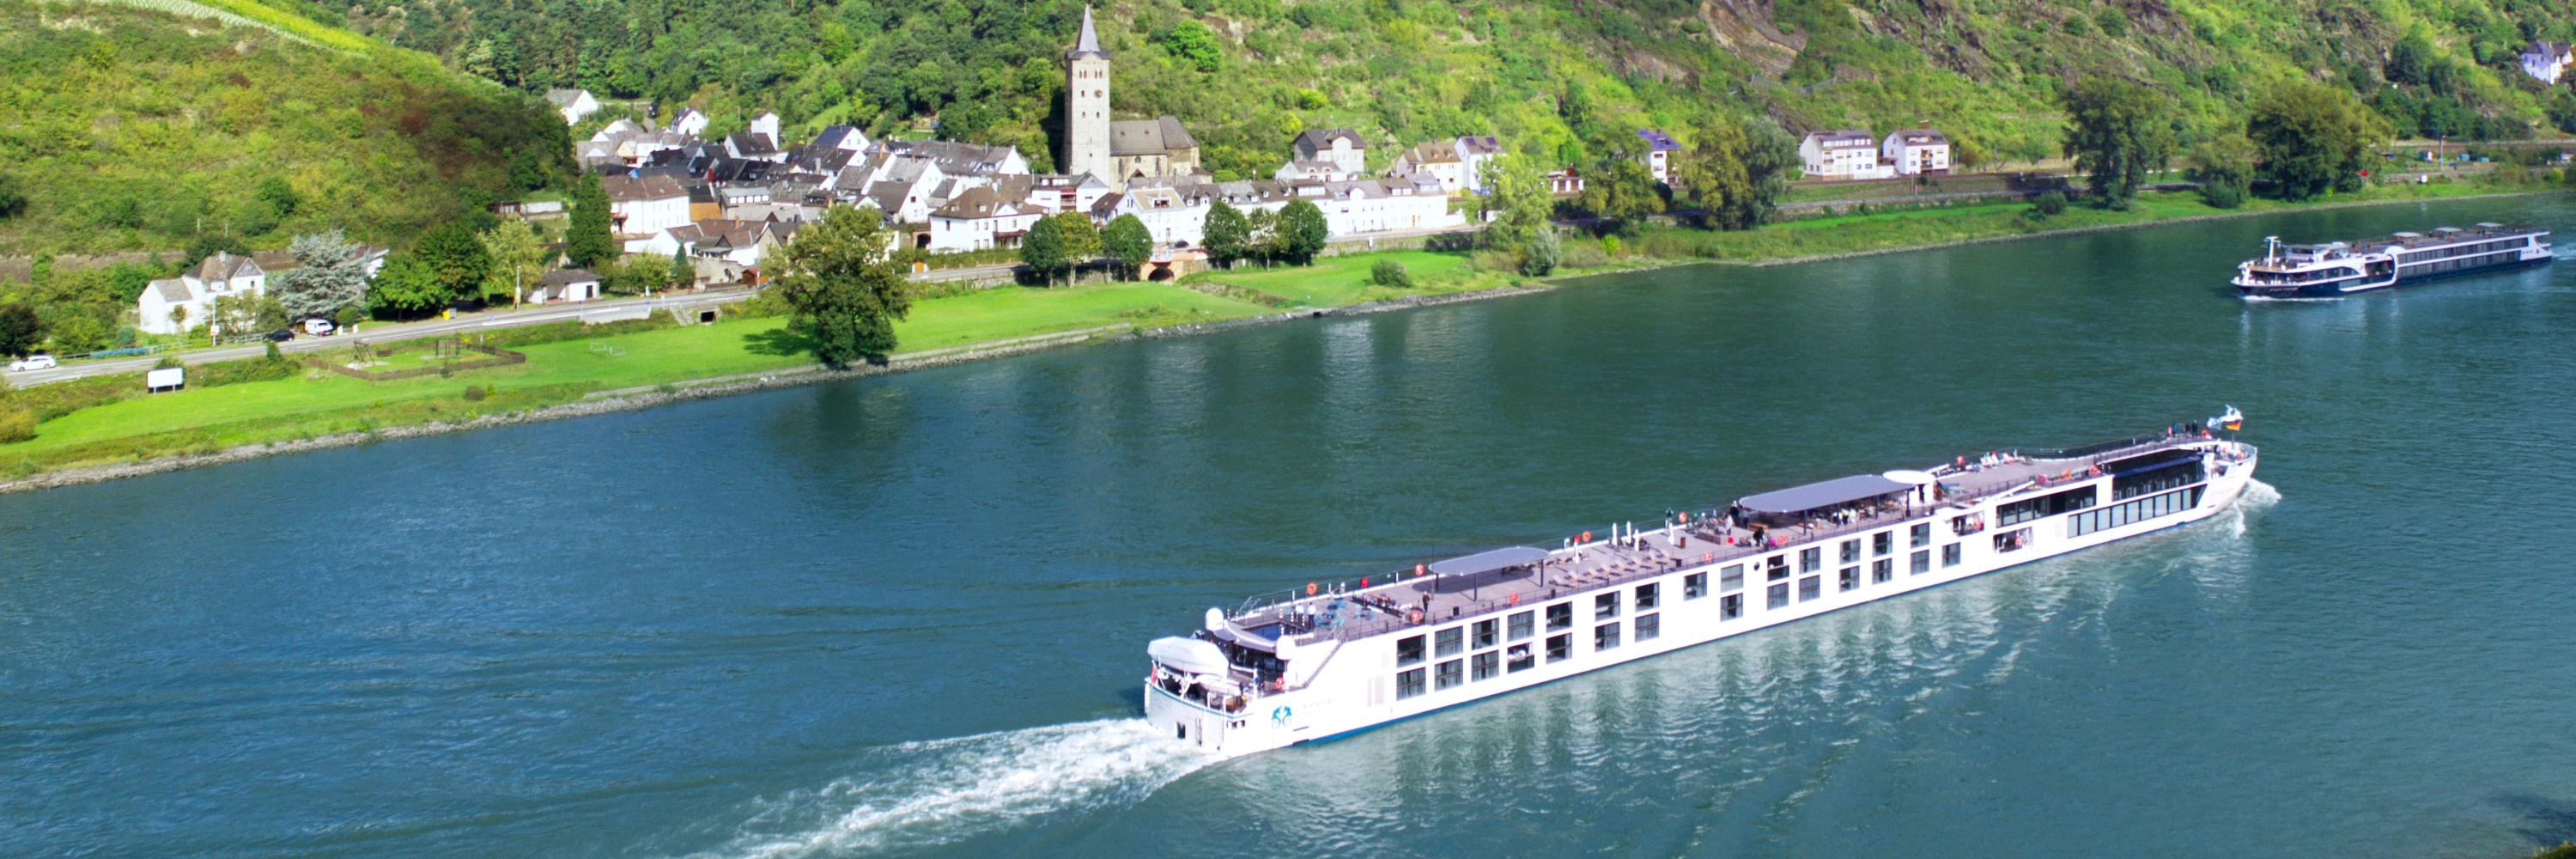 Crystal River Cruises - 50% off Advance Savings Program